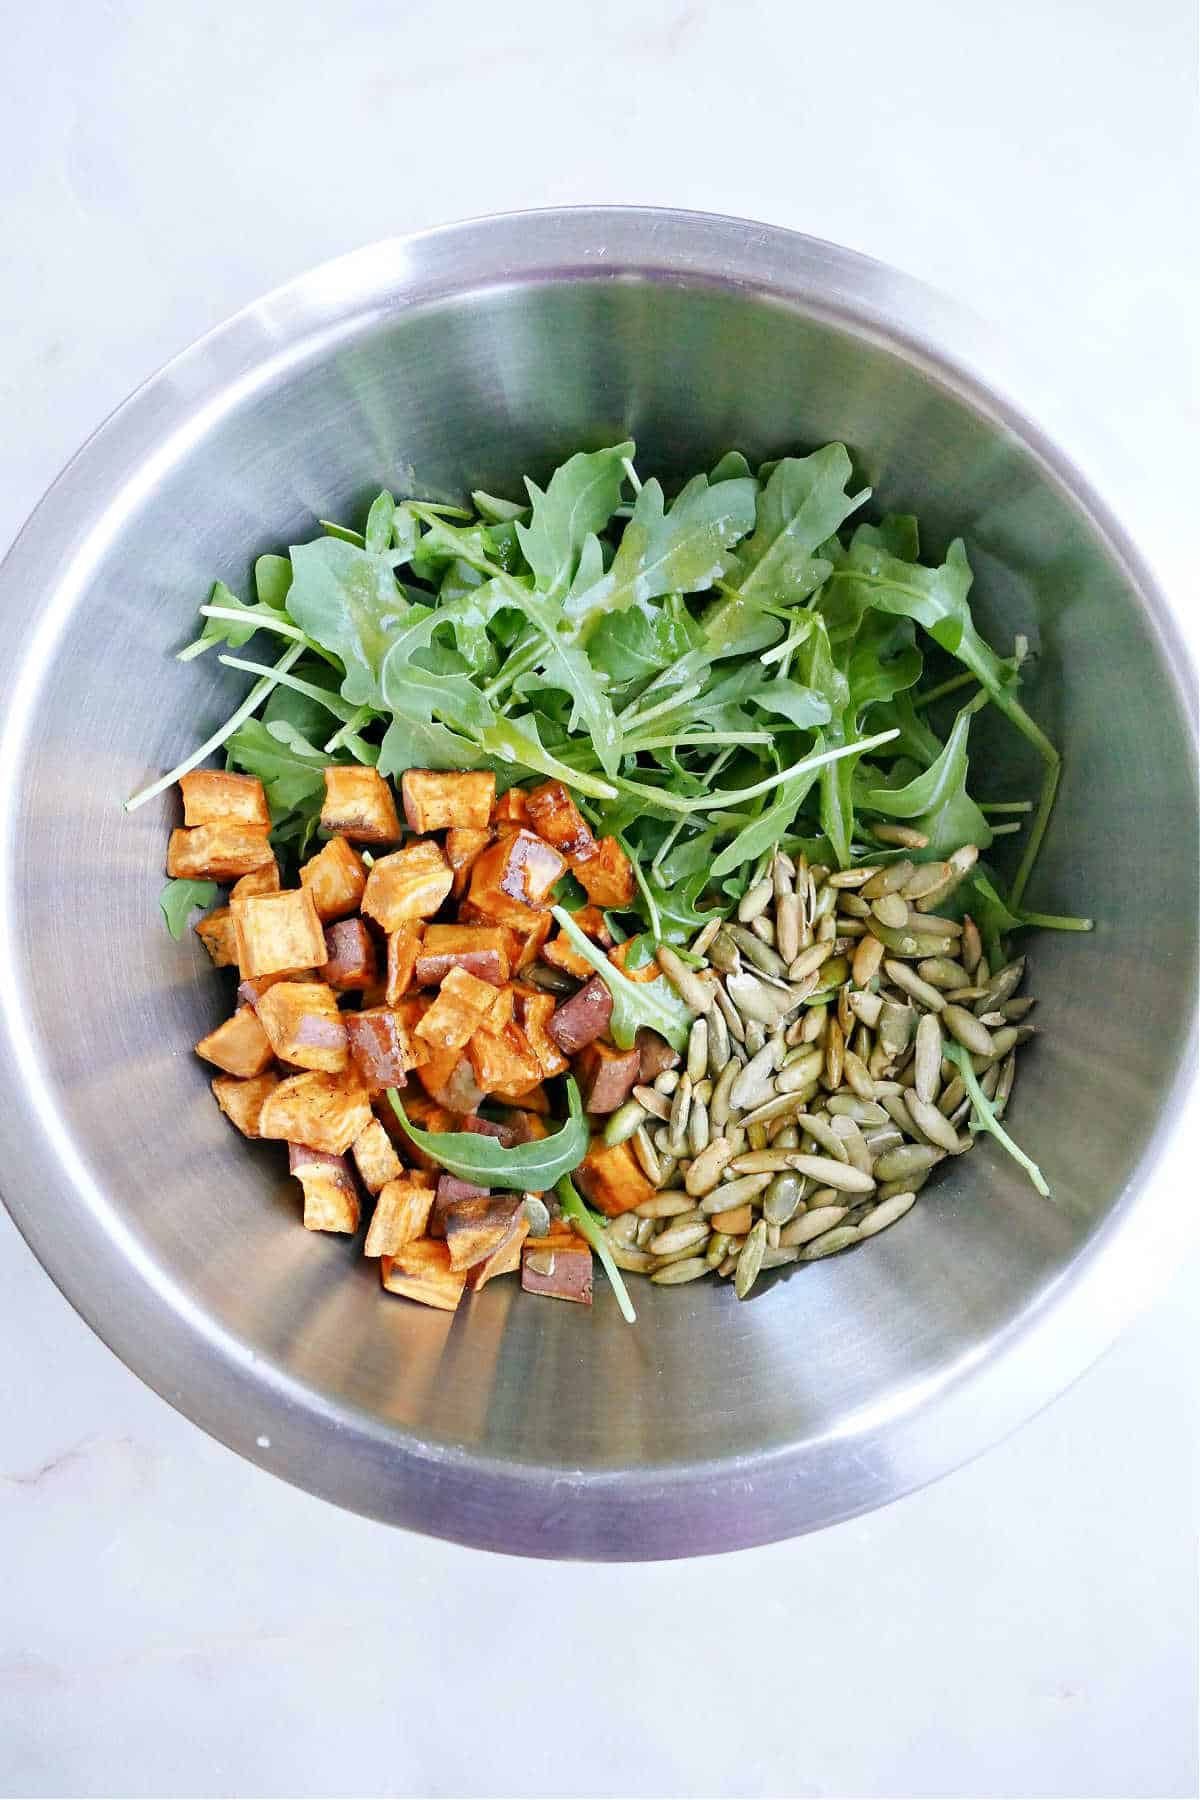 roasted sweet potato, arugula, and pumpkin seeds in a mixing bowl on a counter